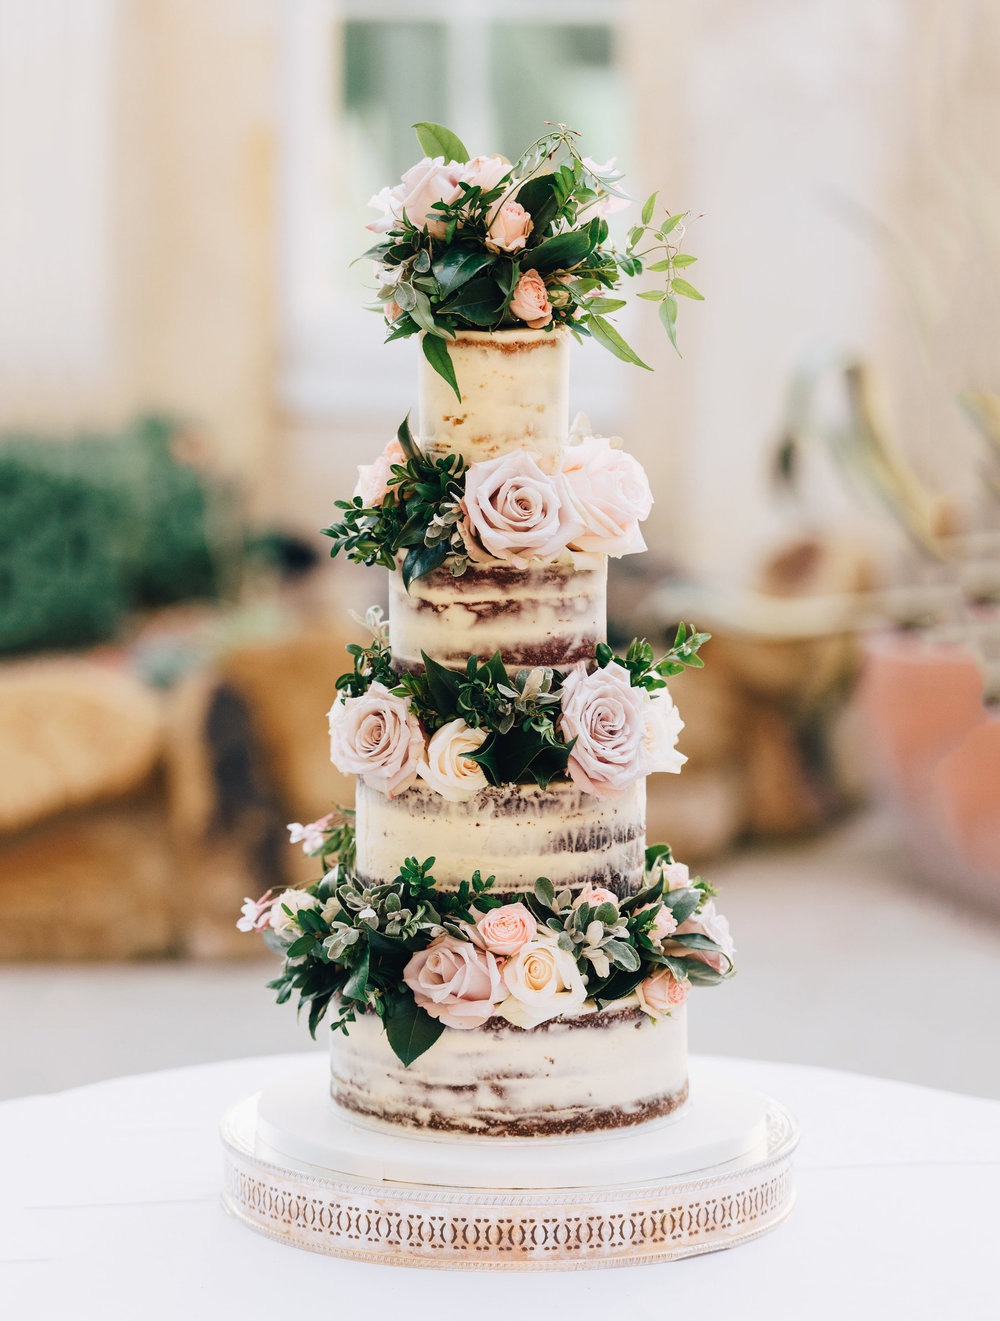 Save The Top Of The Wedding Cake: Incredible American Wedding Traditions to follow